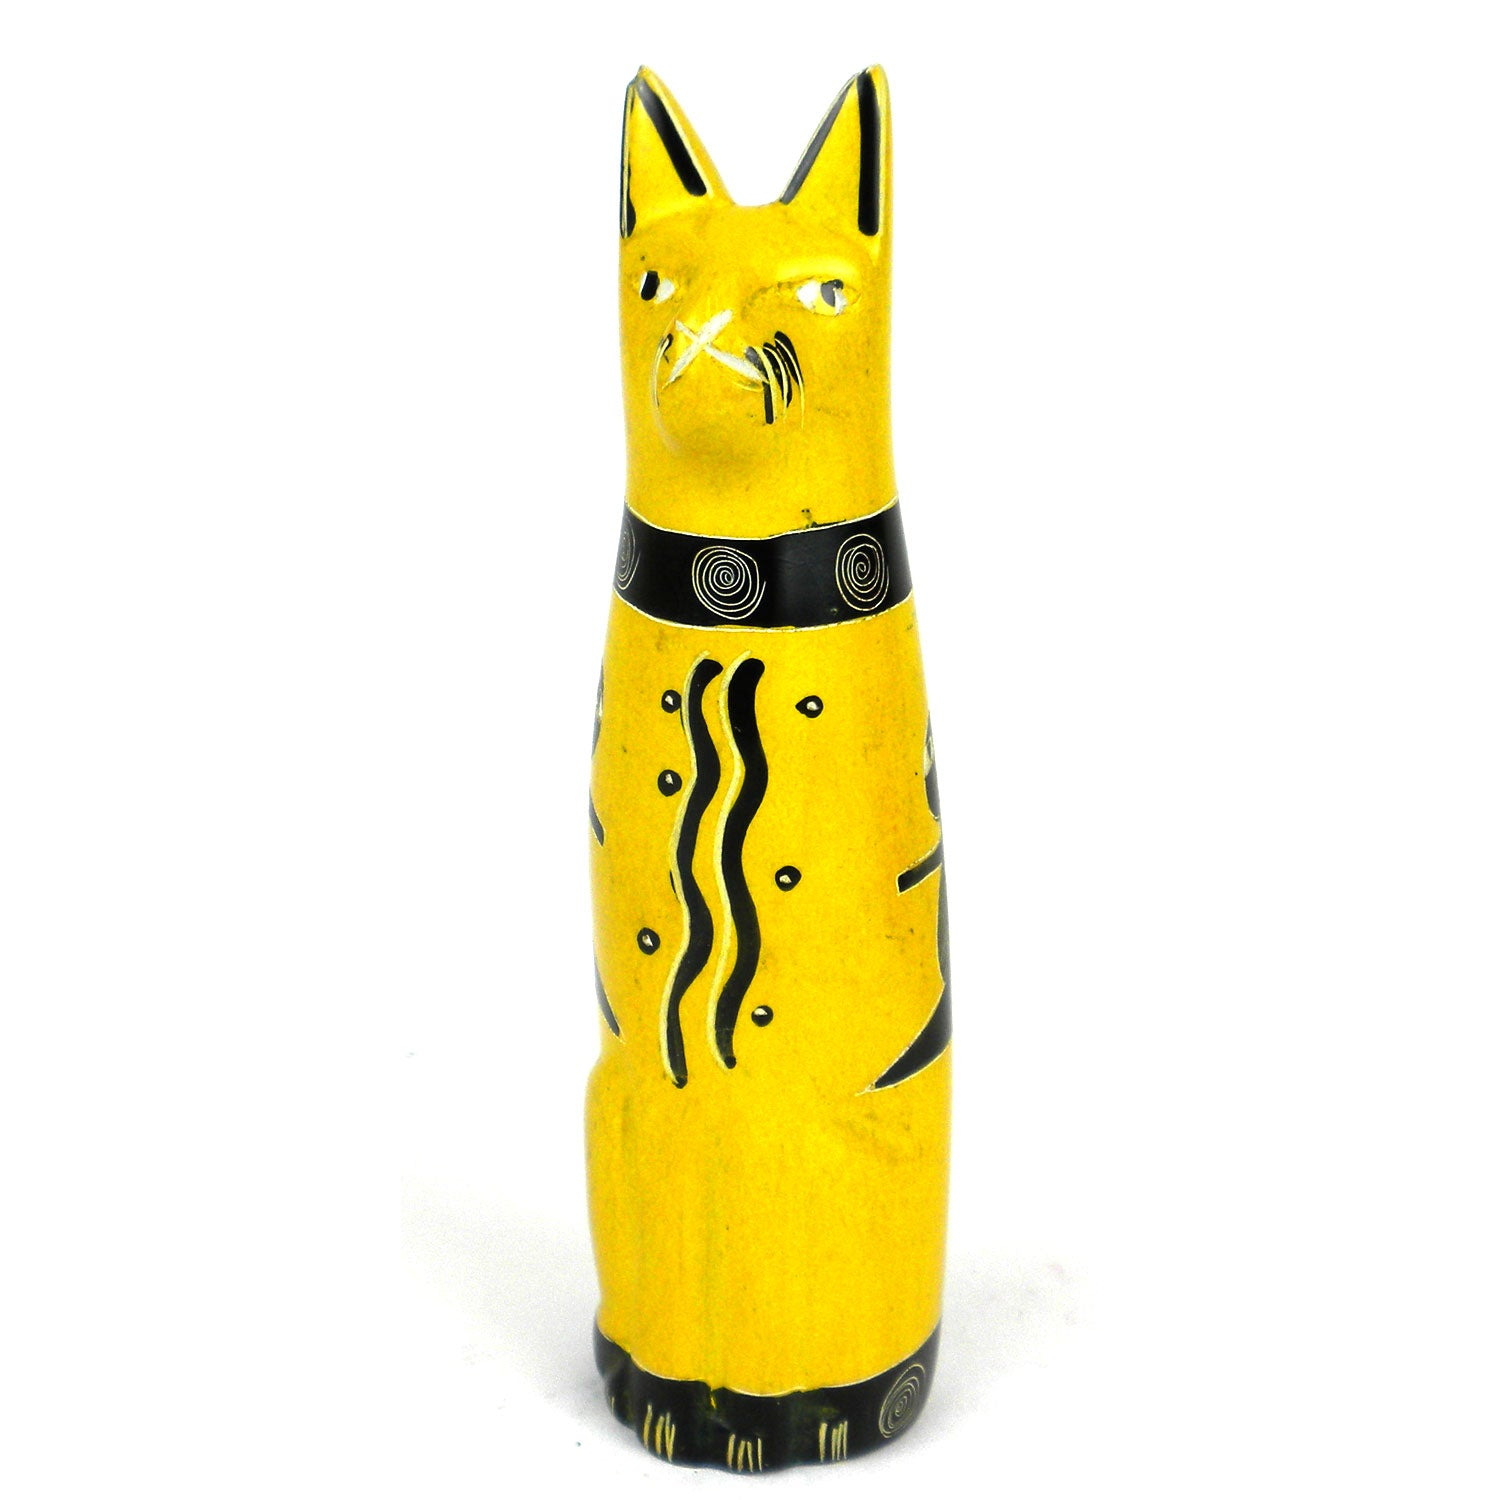 Handcrafted 5-inch Soapstone Sitting Cat Sculpture in Yellow